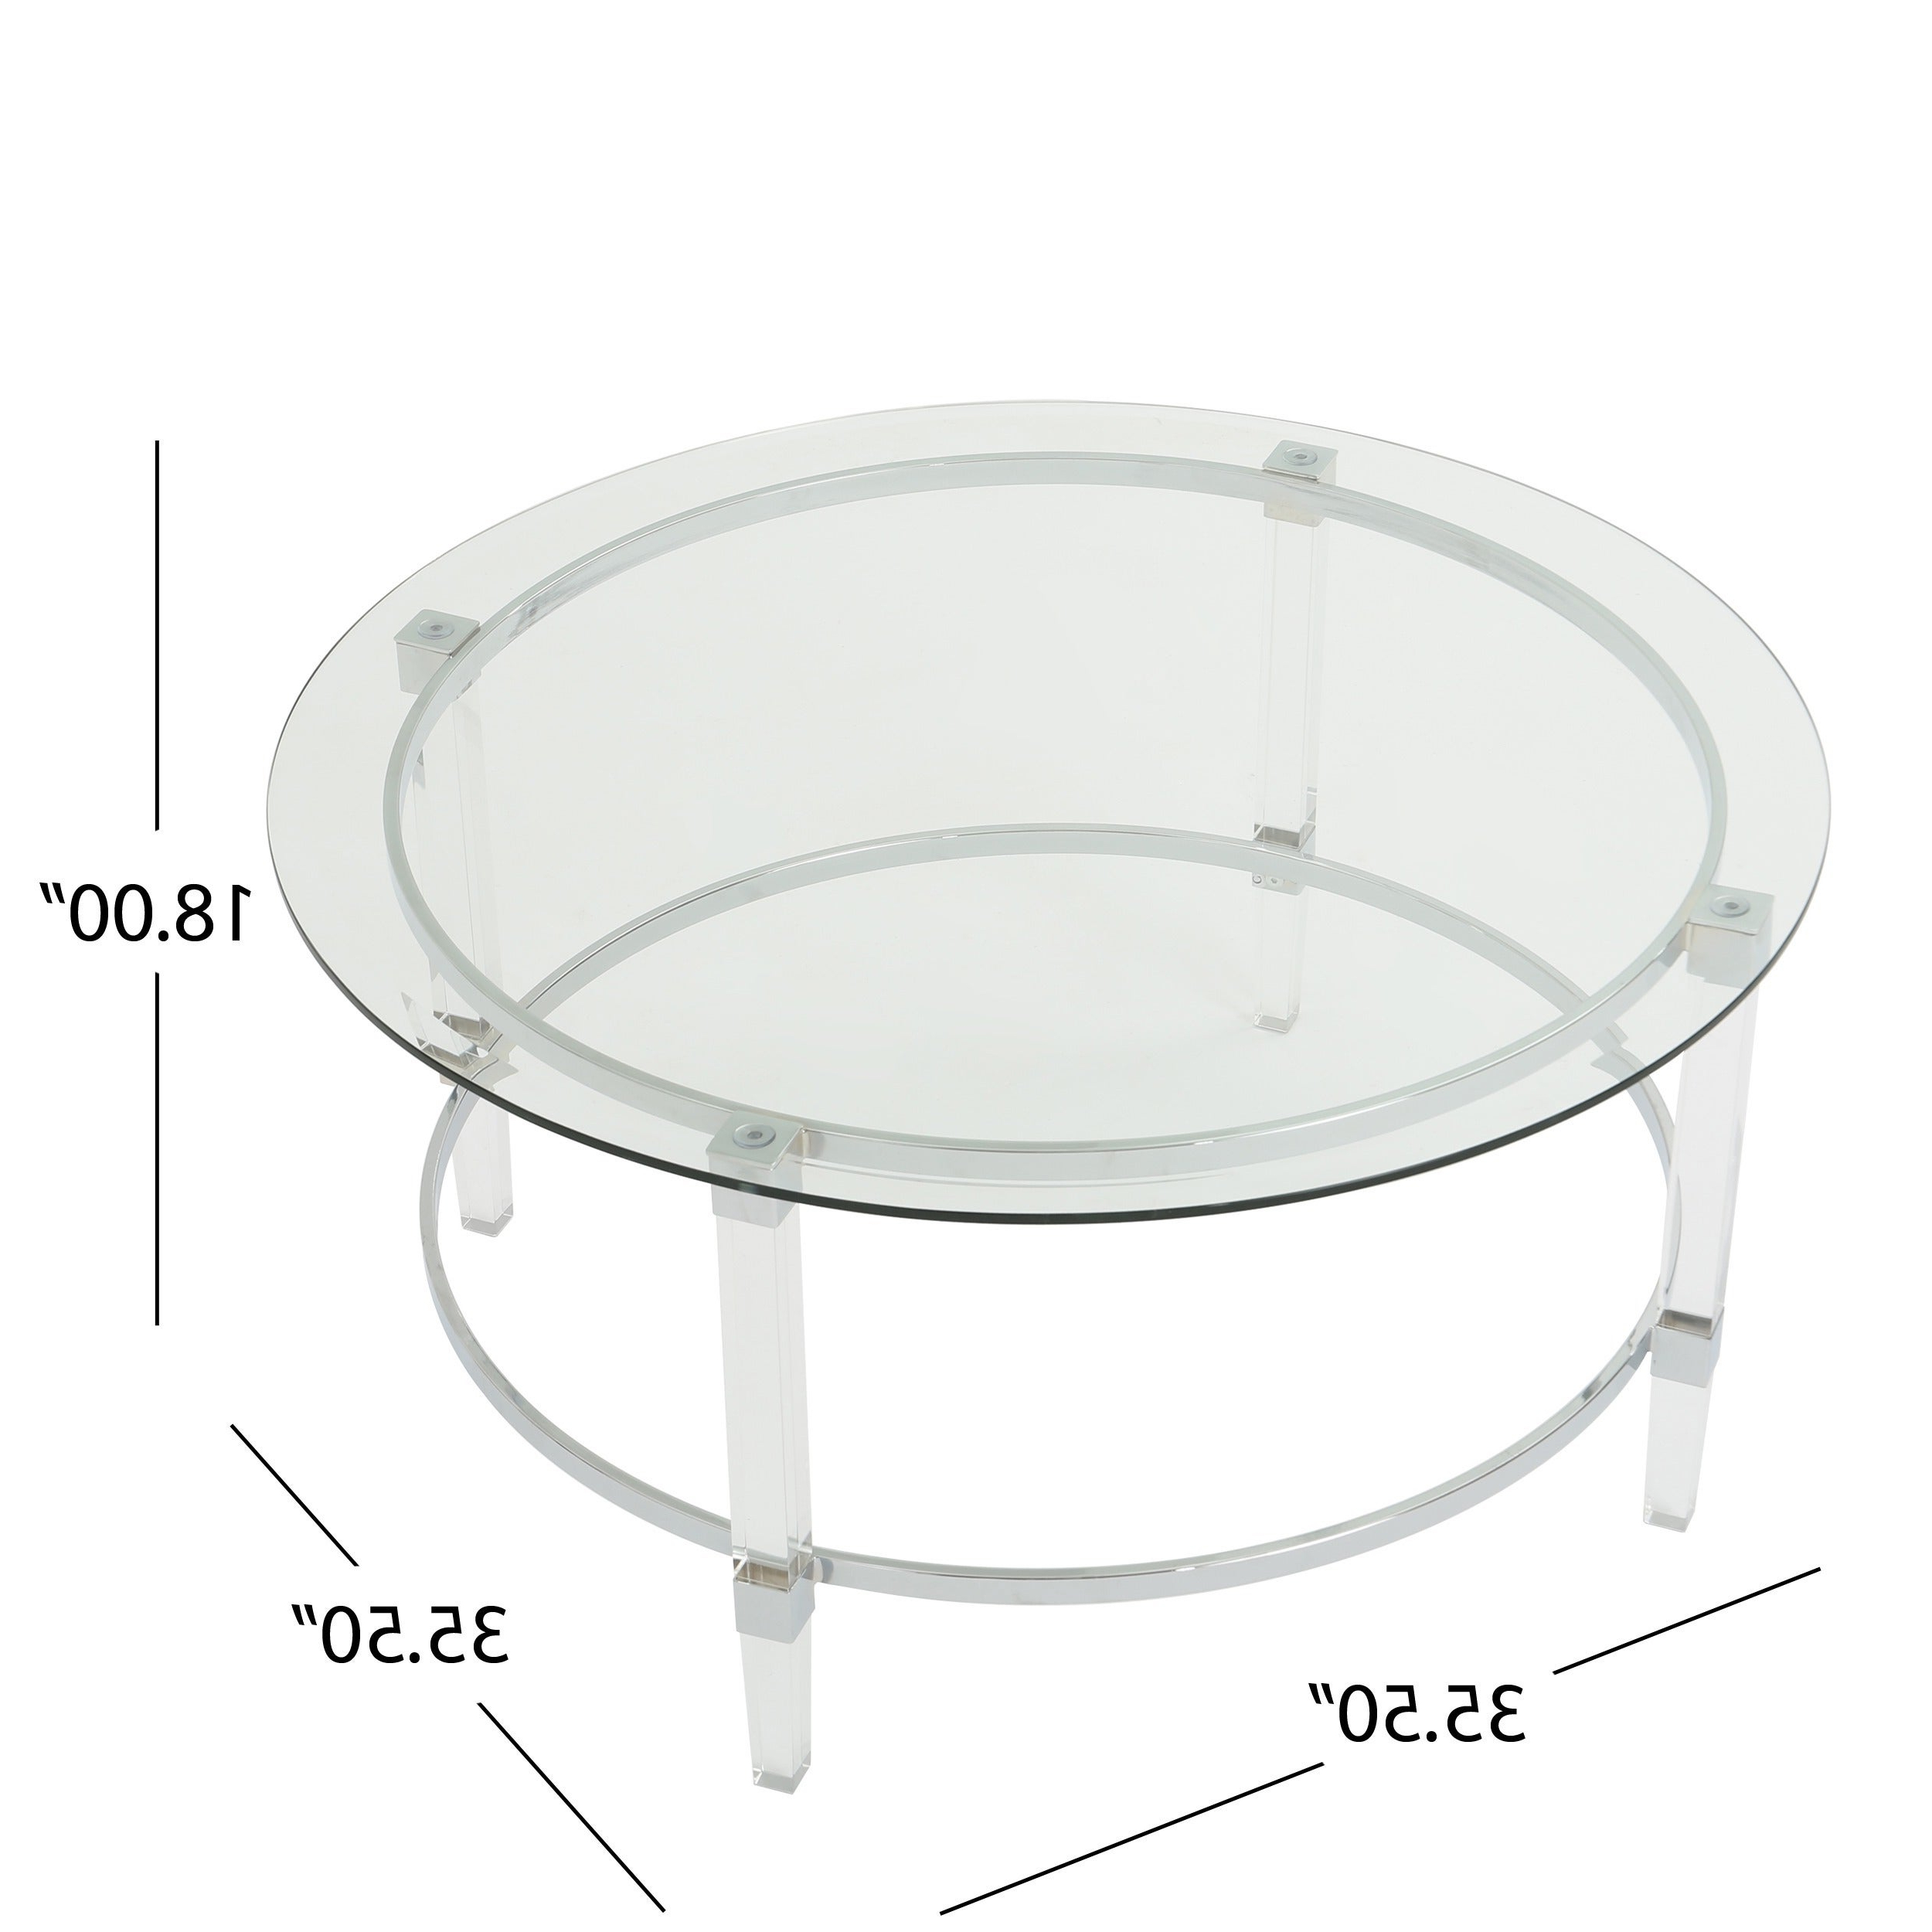 Elowen Round Glass Coffee Tablechristopher Knight Home Pertaining To Current Elowen Round Glass Coffee Tables (View 8 of 20)